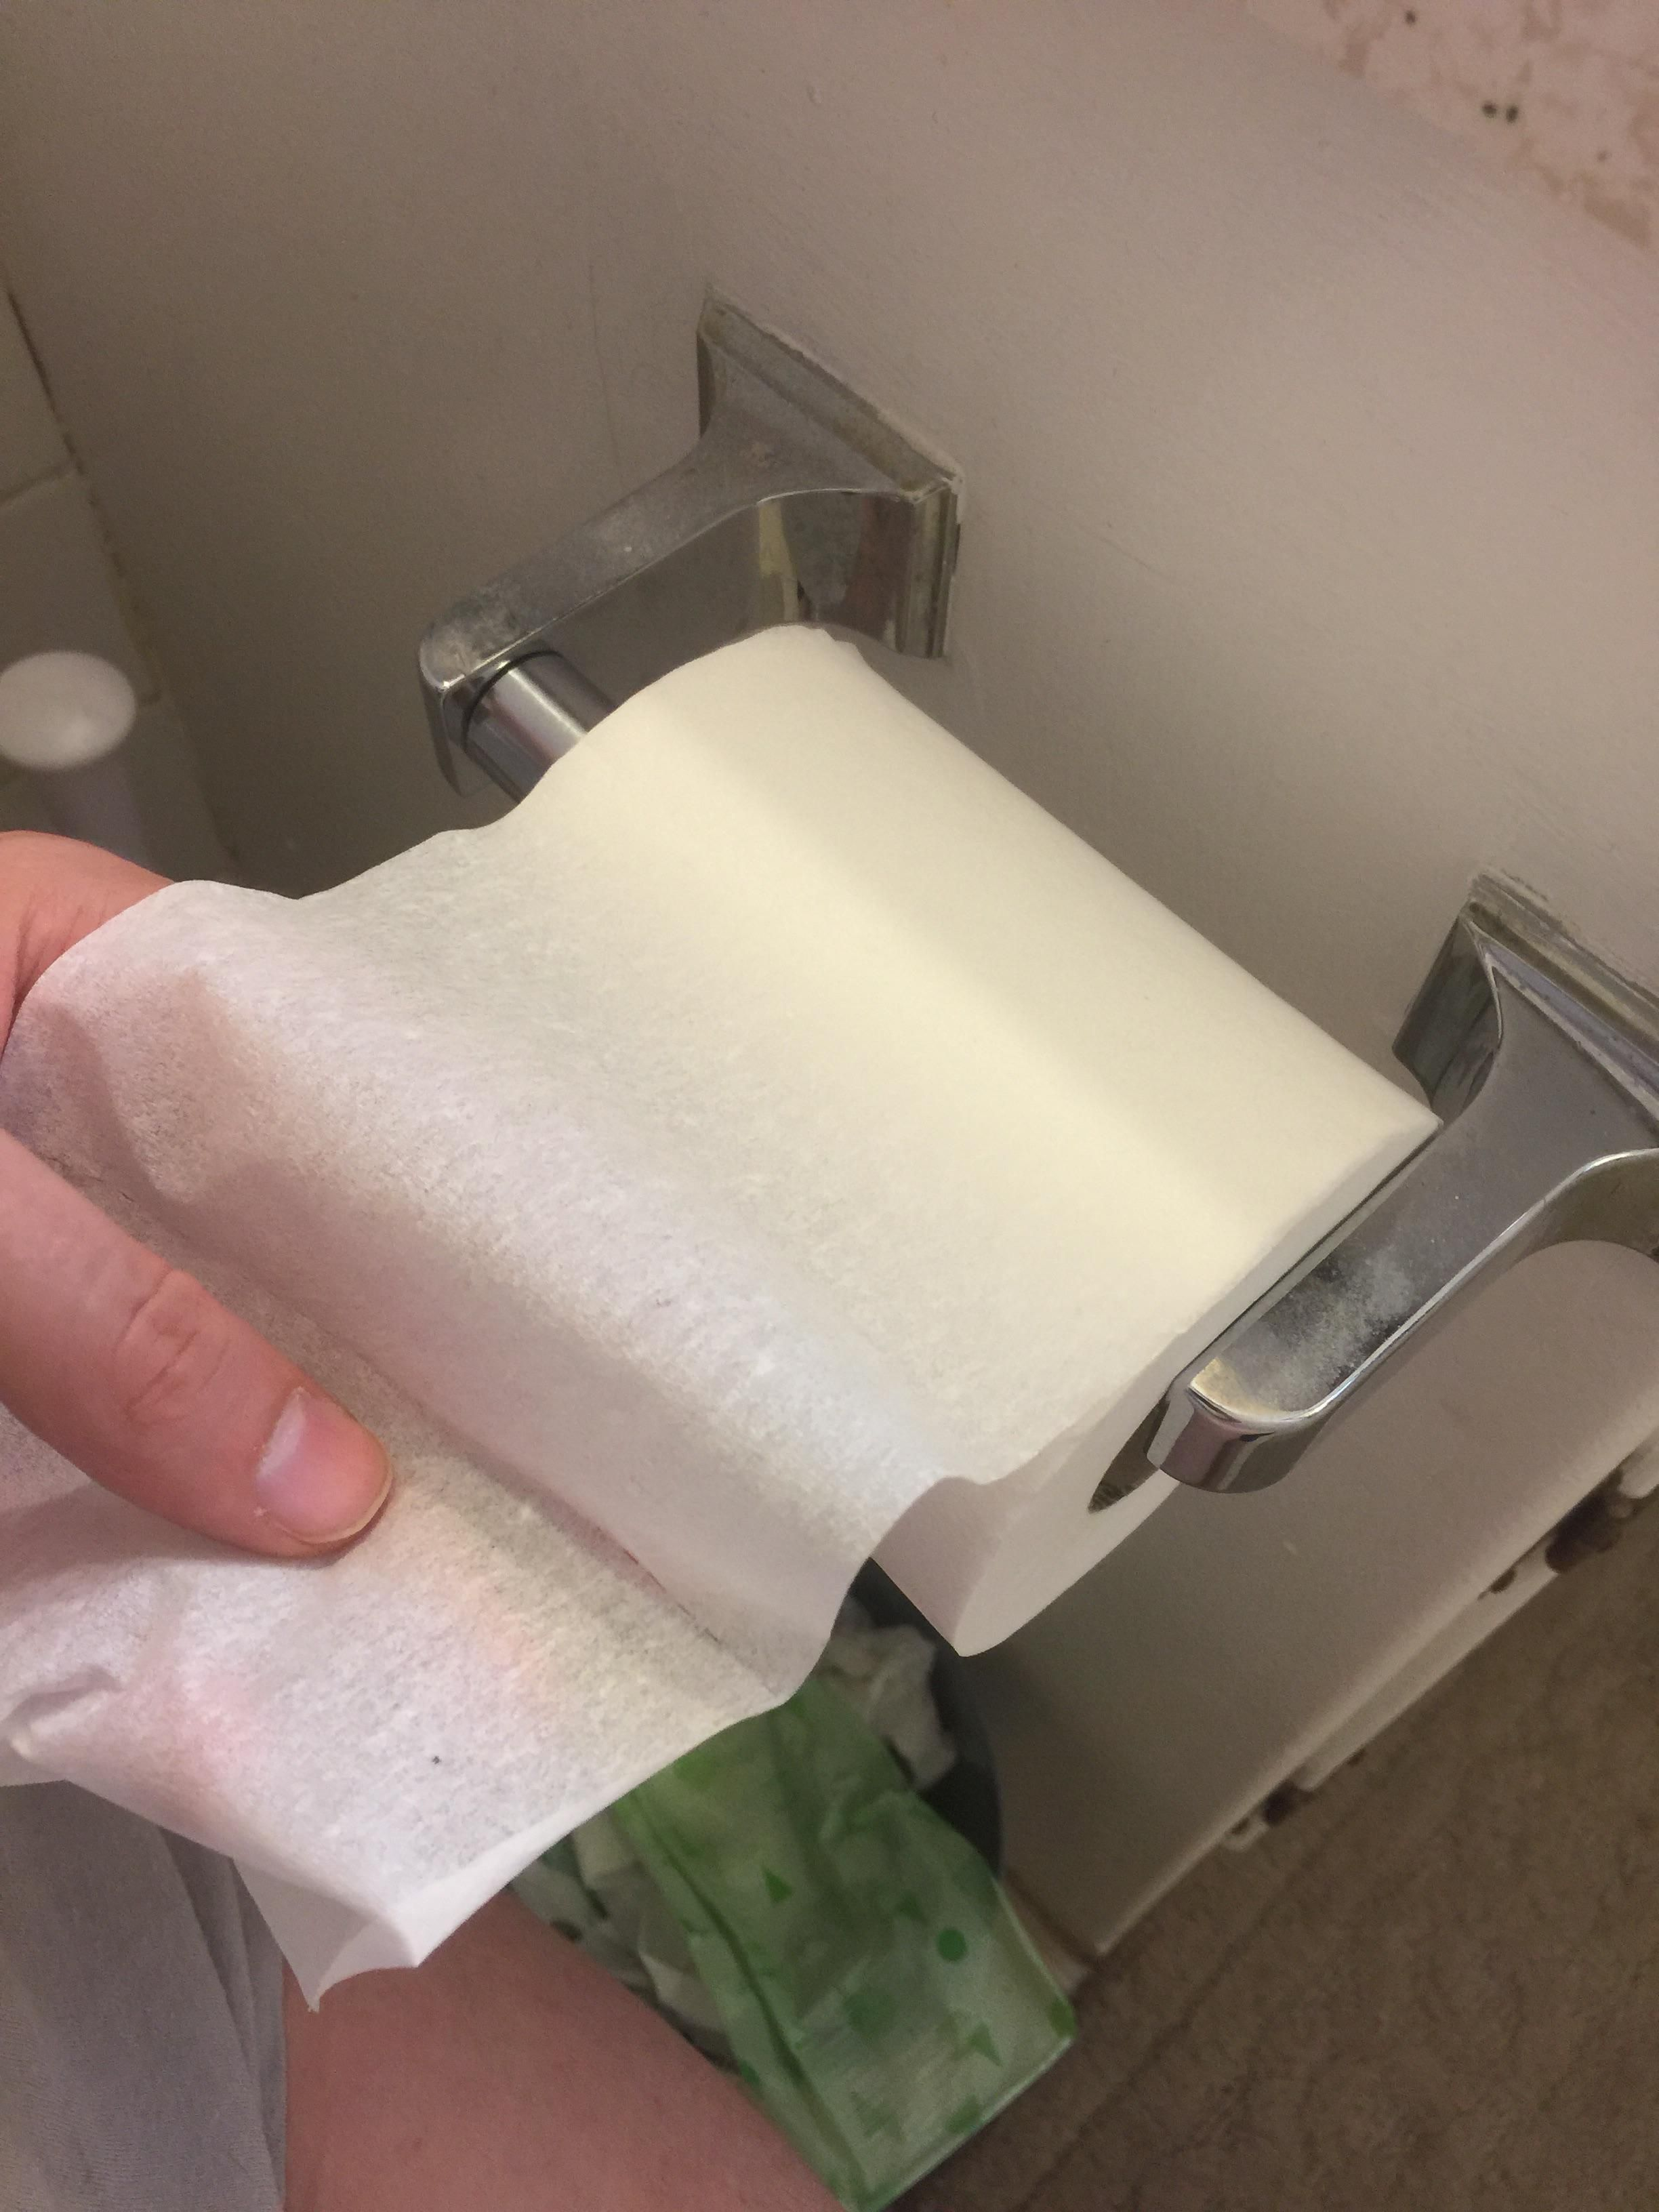 My wife bought toilet paper for the first time...one ply...I live ...